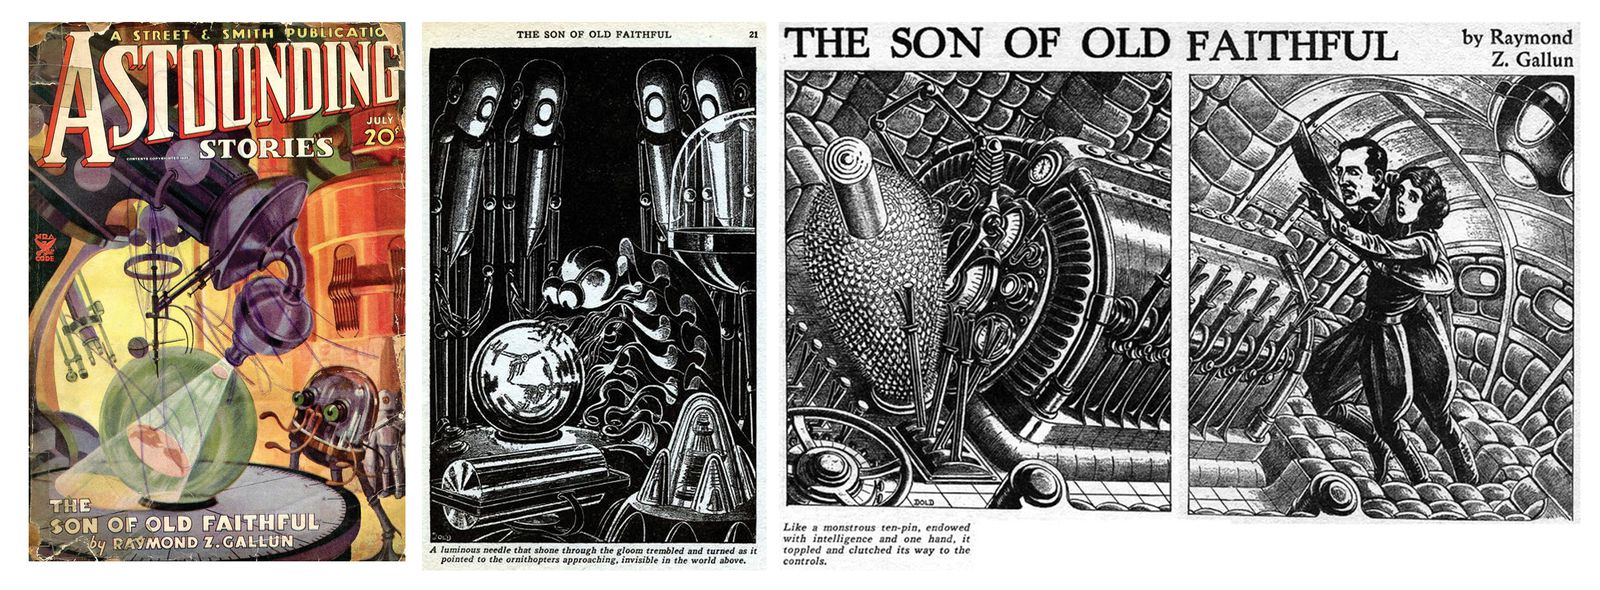 The Son of Old Faithful dans Astounding Stories du 22 avril 1935 illustré par Elliot Dold